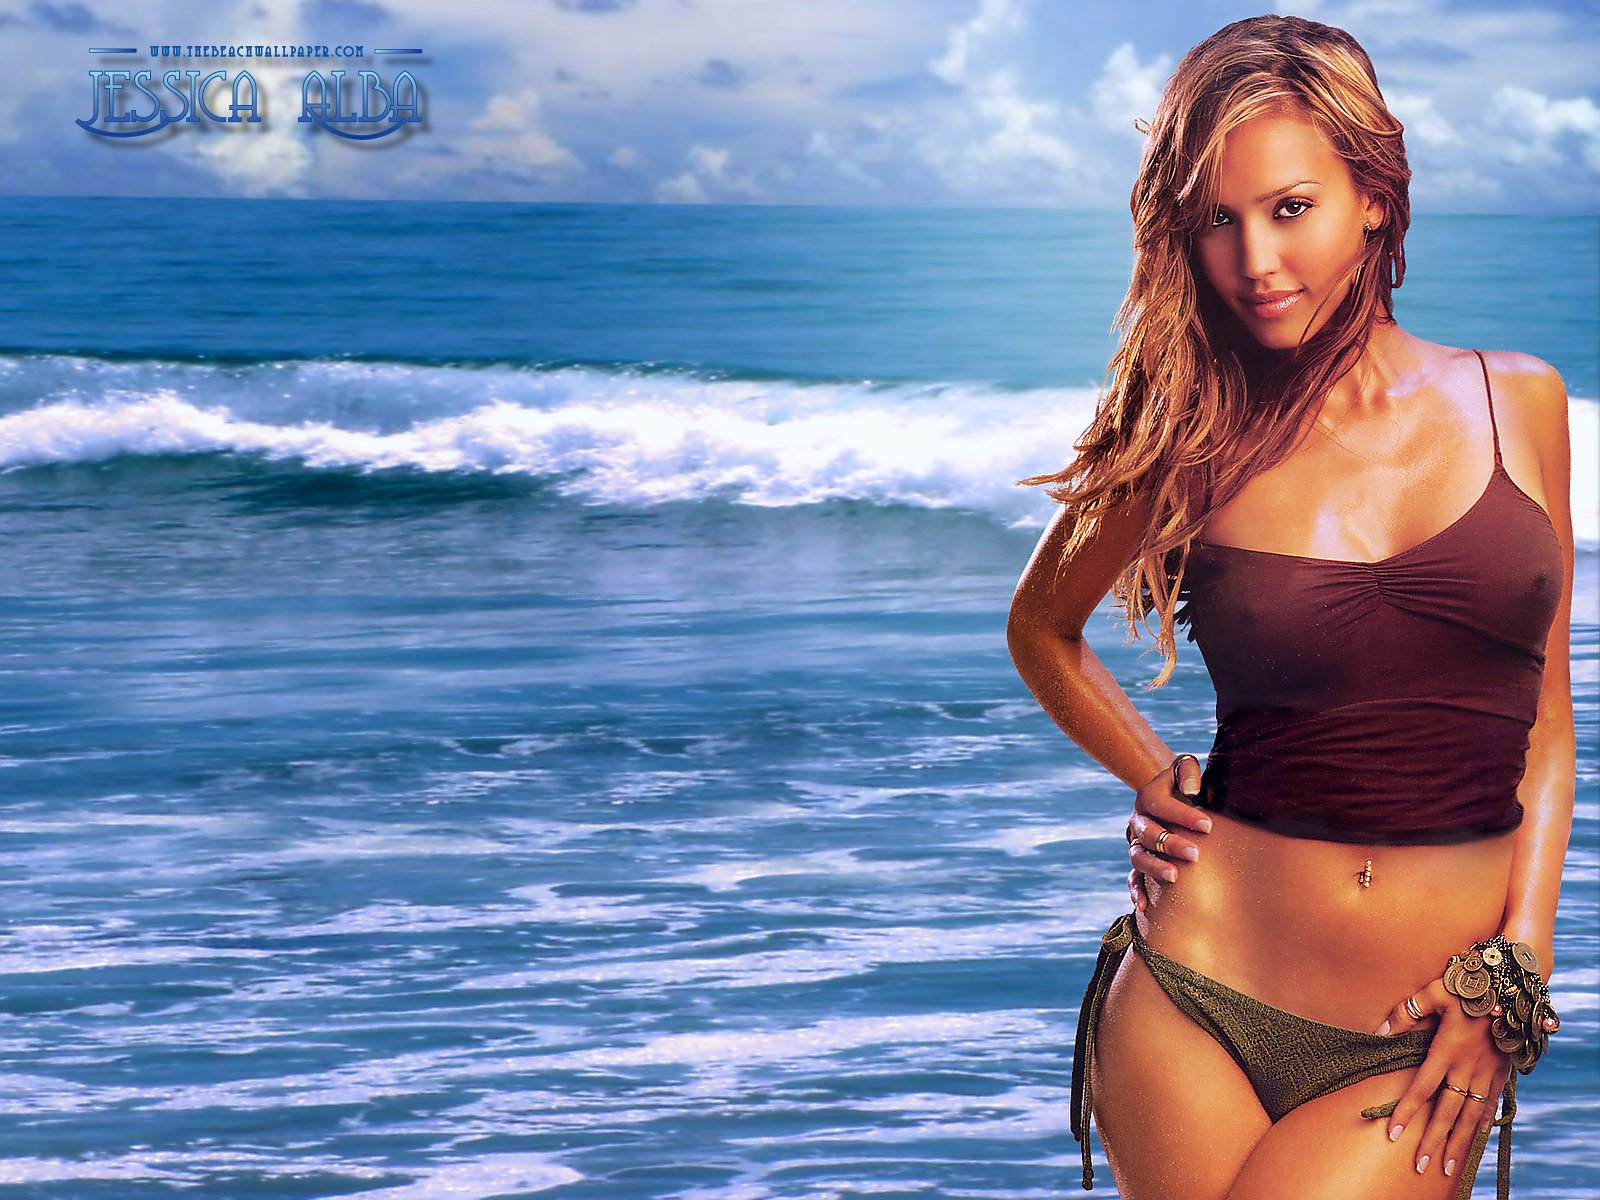 jessica alba wallpaper 35jpg - photo #21